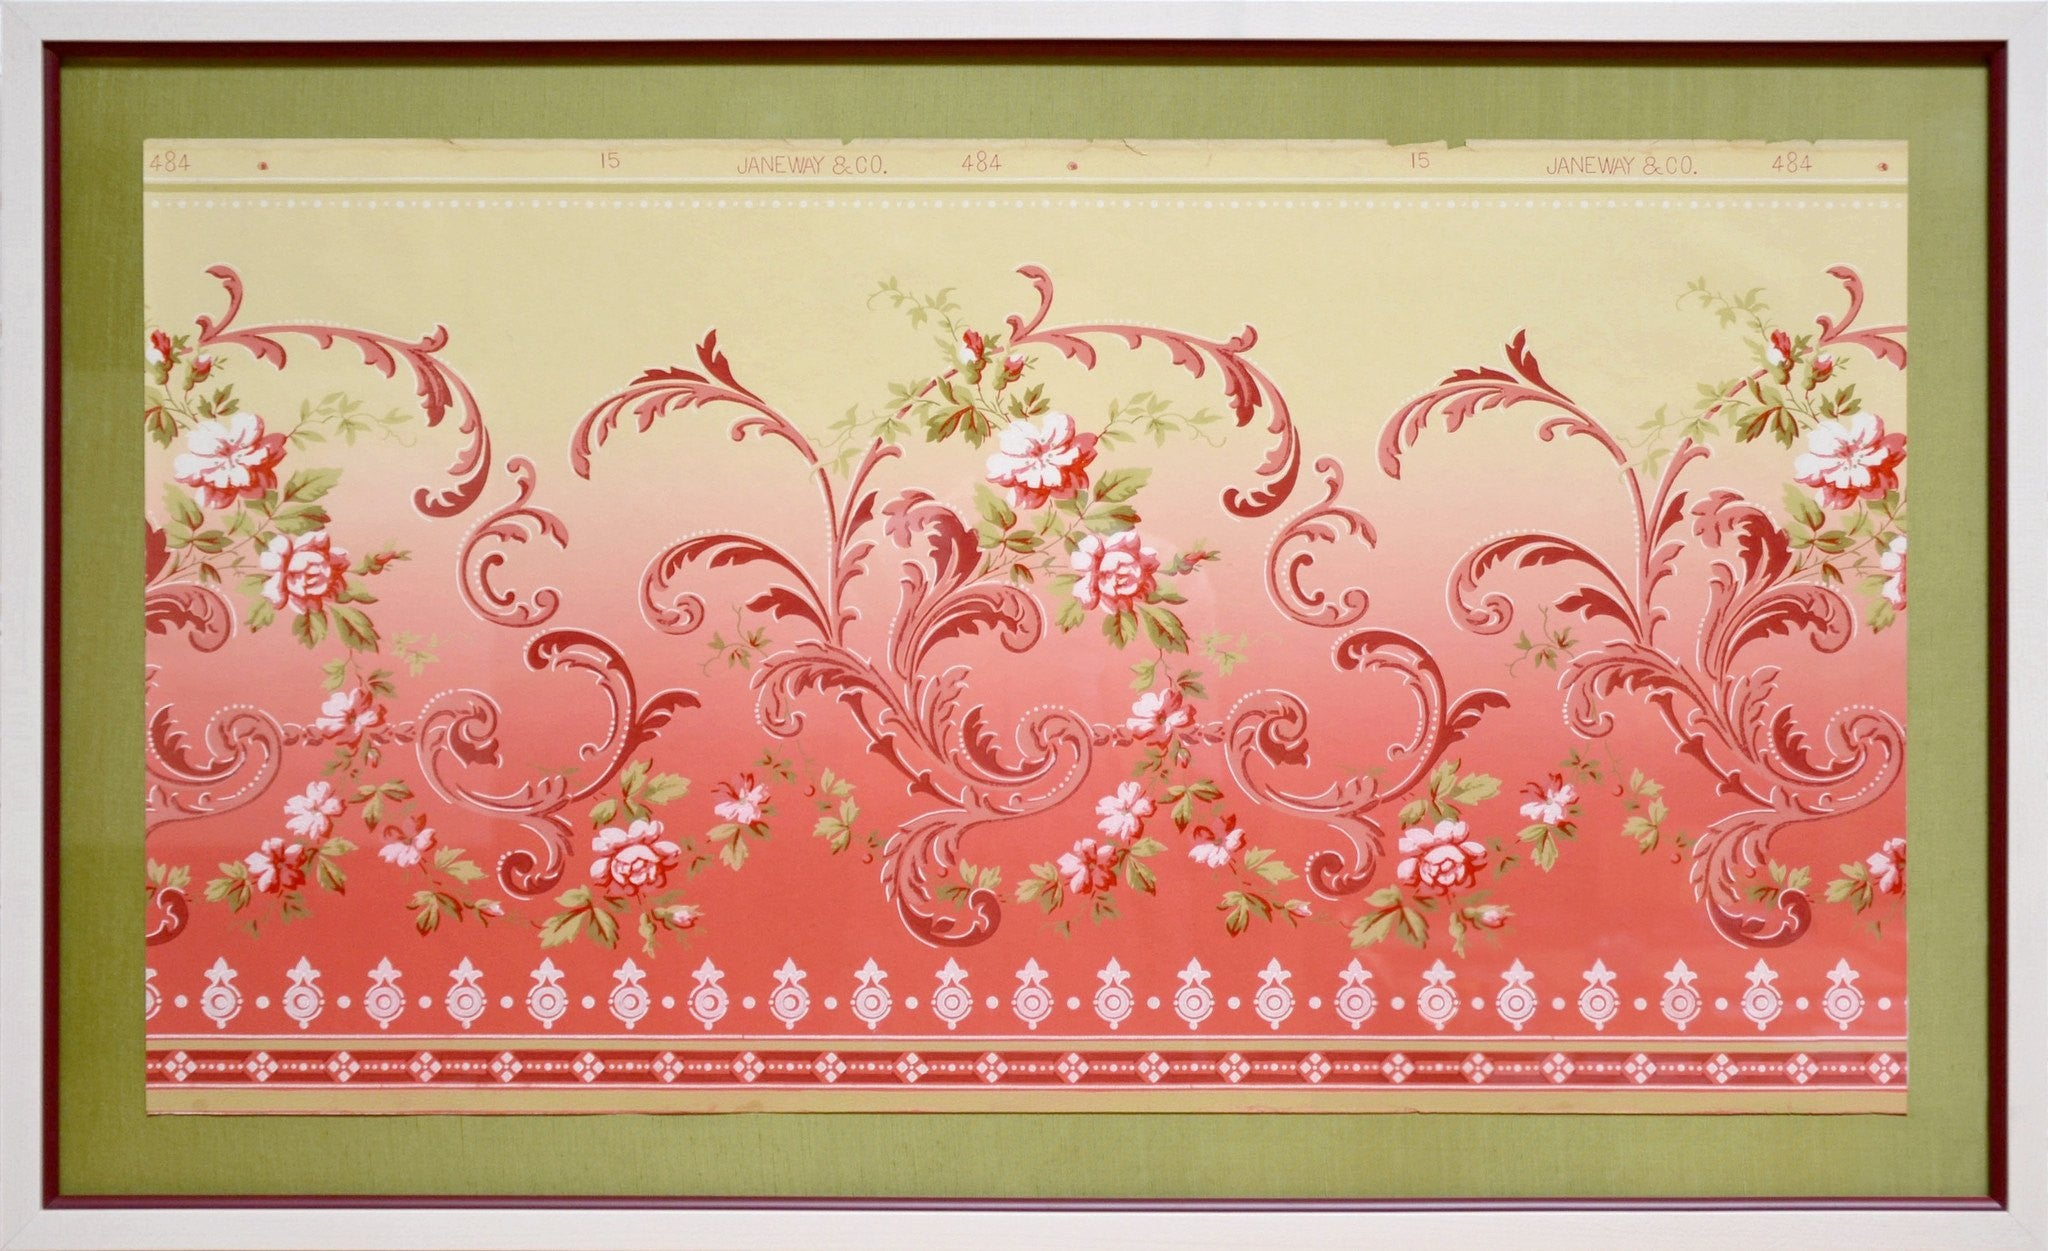 Delicate Blended Empire Floral Frieze Antique Wallpaper Wall Art